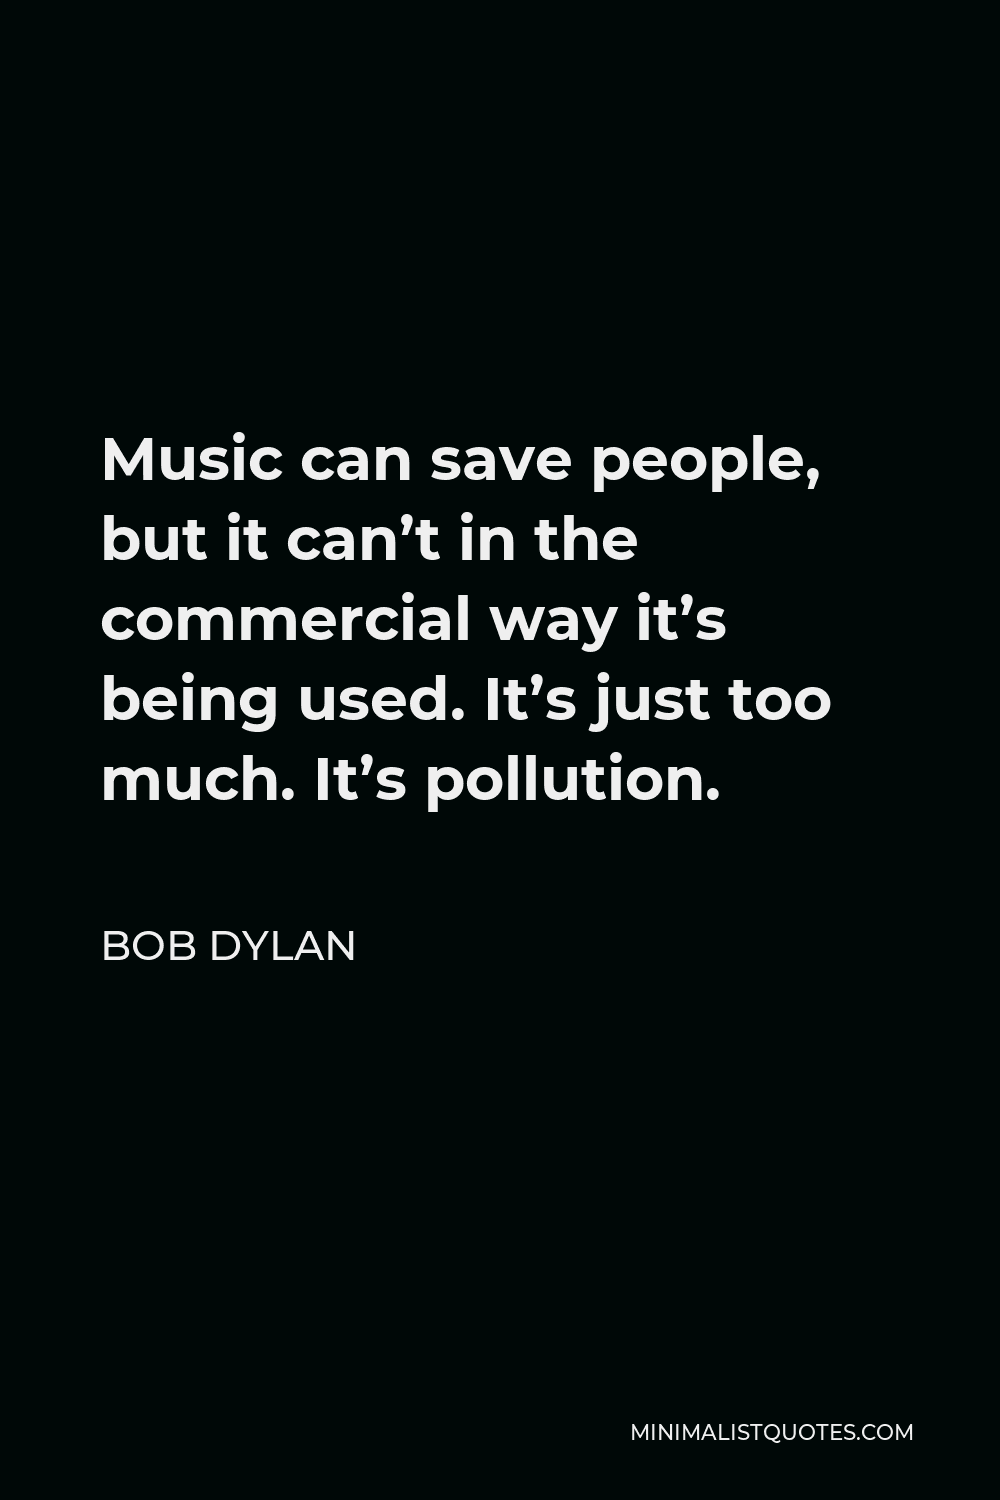 Bob Dylan Quote - Music can save people, but it can't in the commercial way it's being used. It's just too much. It's pollution.